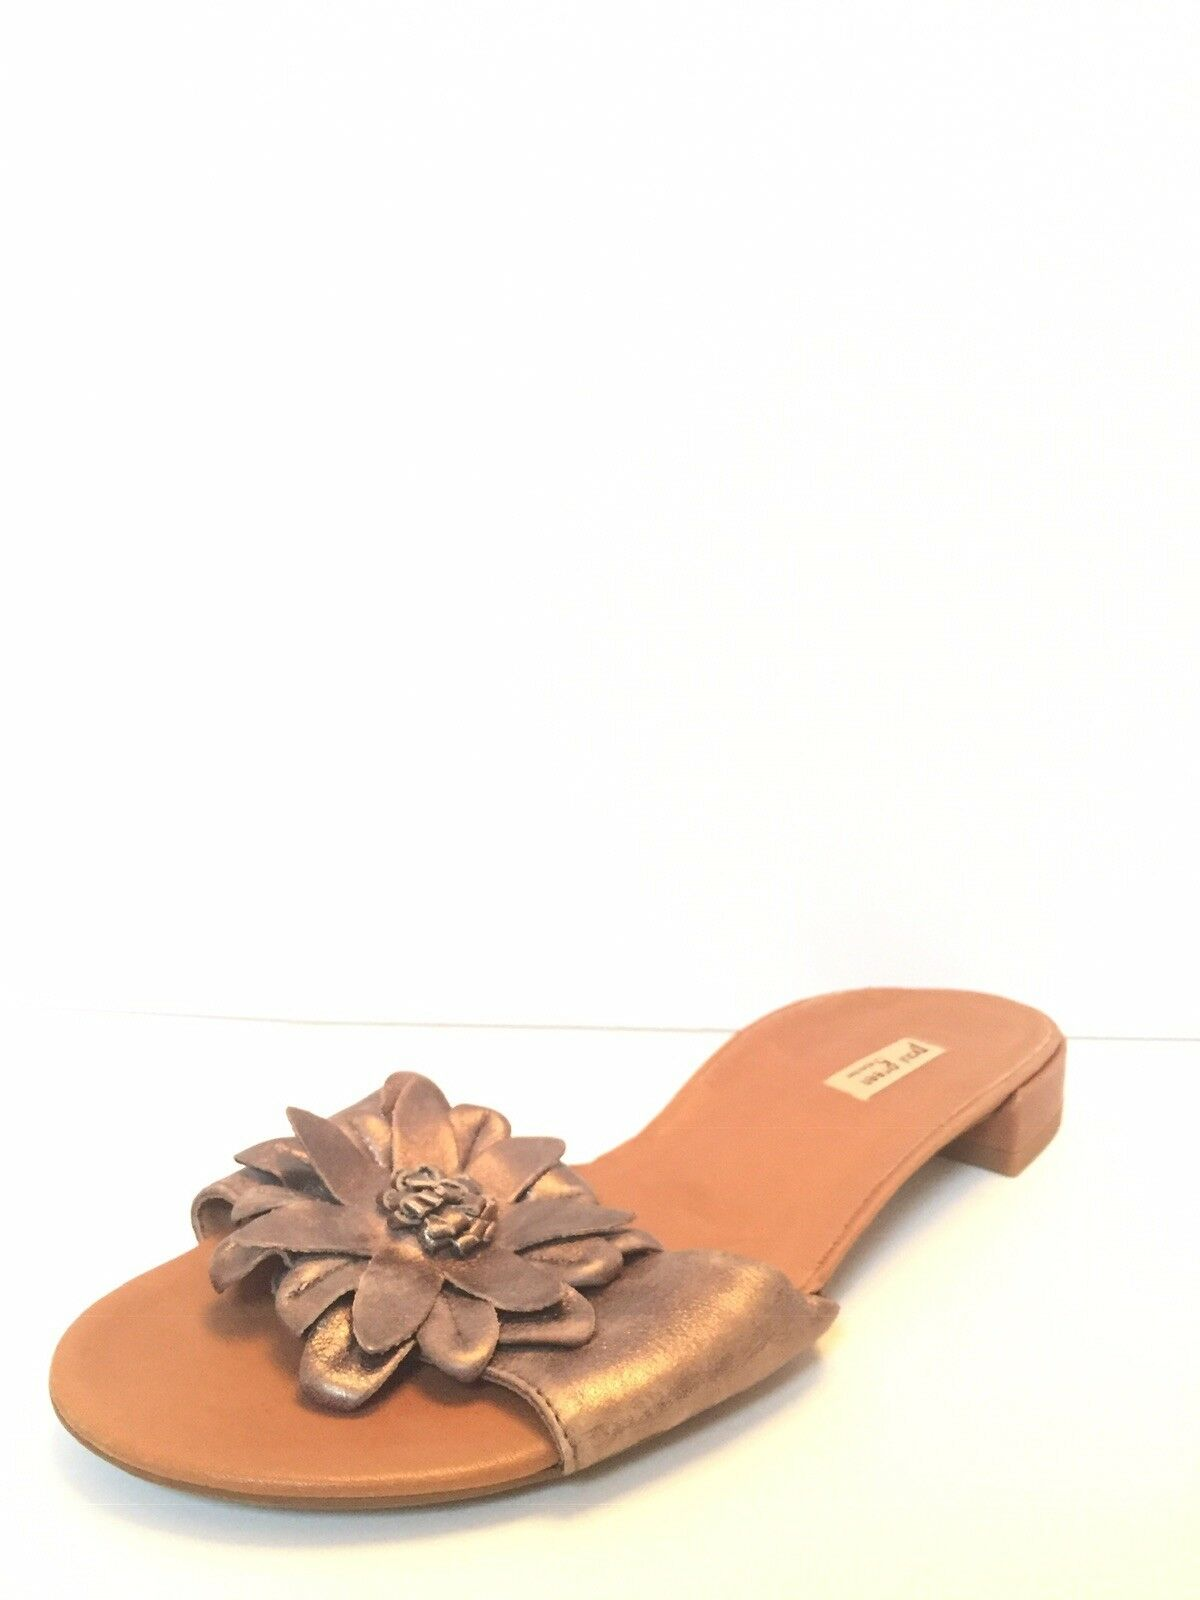 245 Paul Green Size 6 Brown Metallic Leather Handmade Low Heel Flip Flop Sandal